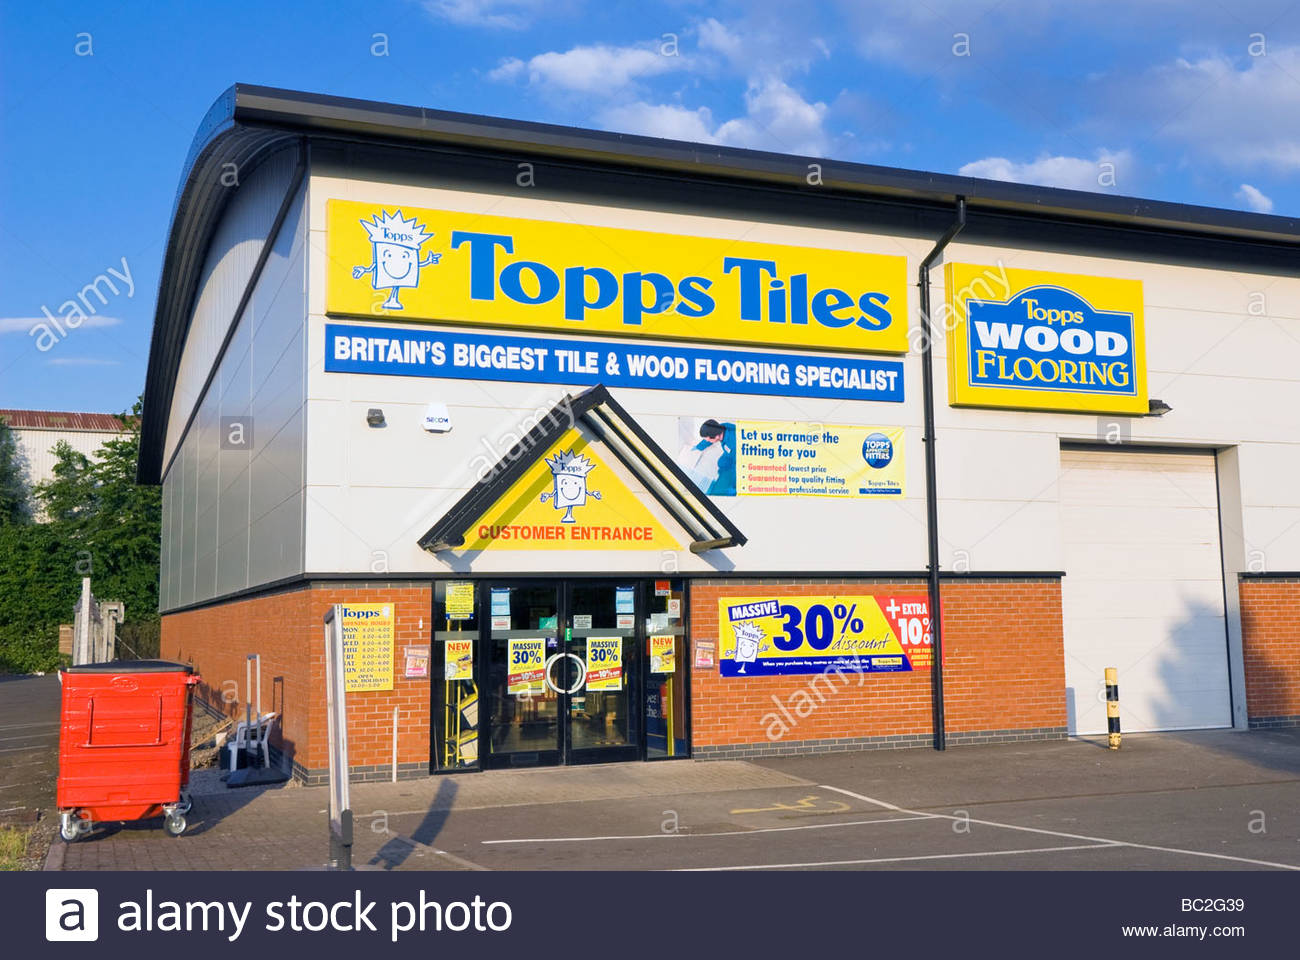 Topps tiles britains biggest tile wood flooring specialist stock topps tiles britains biggest tile wood flooring specialist hereford uk topps wood flooring dailygadgetfo Gallery